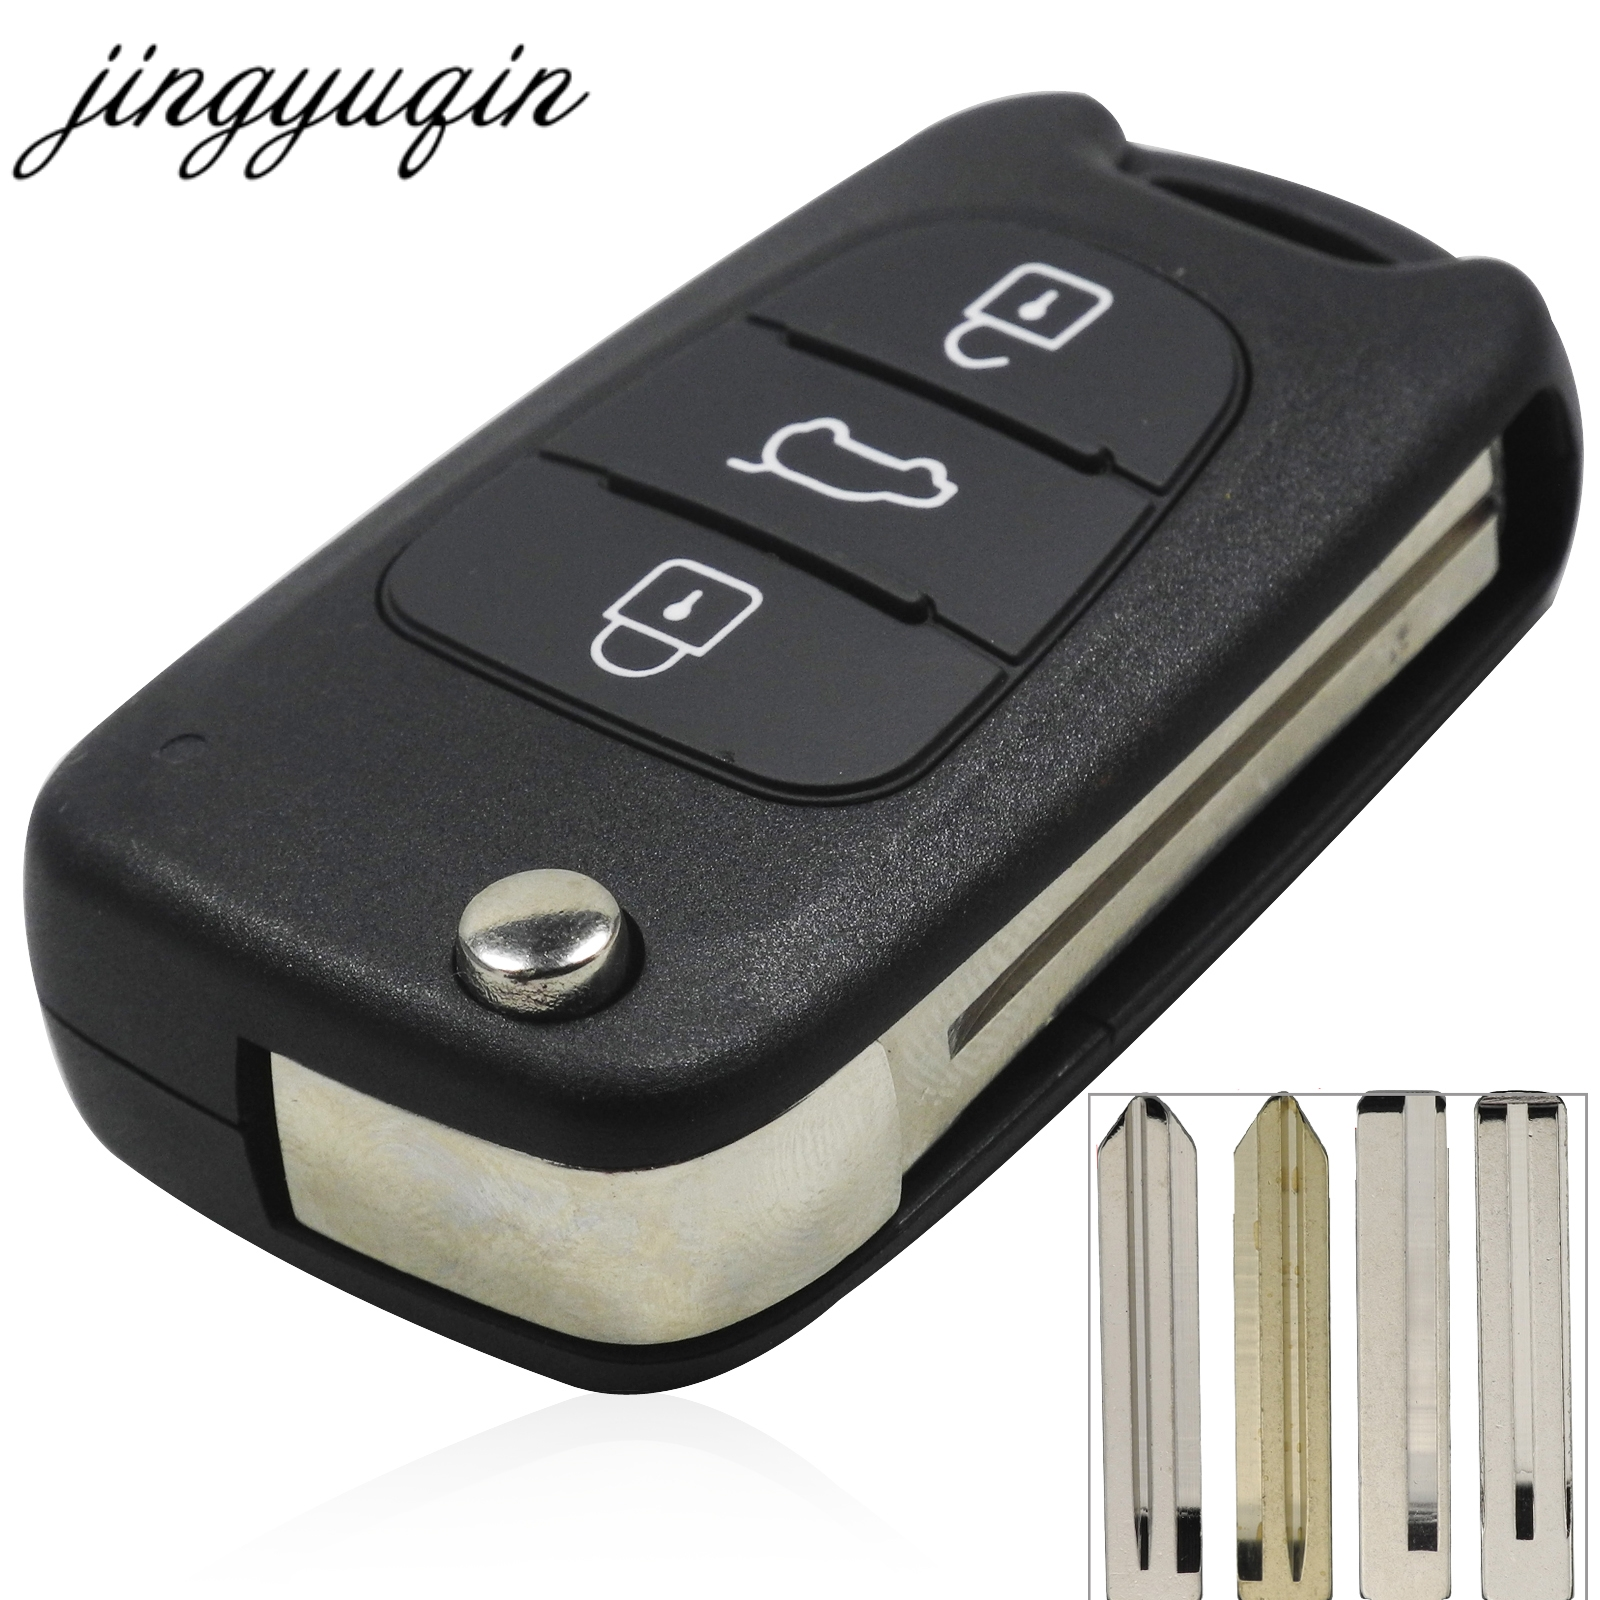 jingyuqin Remote Flip Folding Key Shell 3 Button For Kia sportage Picanto 3 rio k2 K5 Cerato Ceed Soul Car Key Fob Case Housing(China)